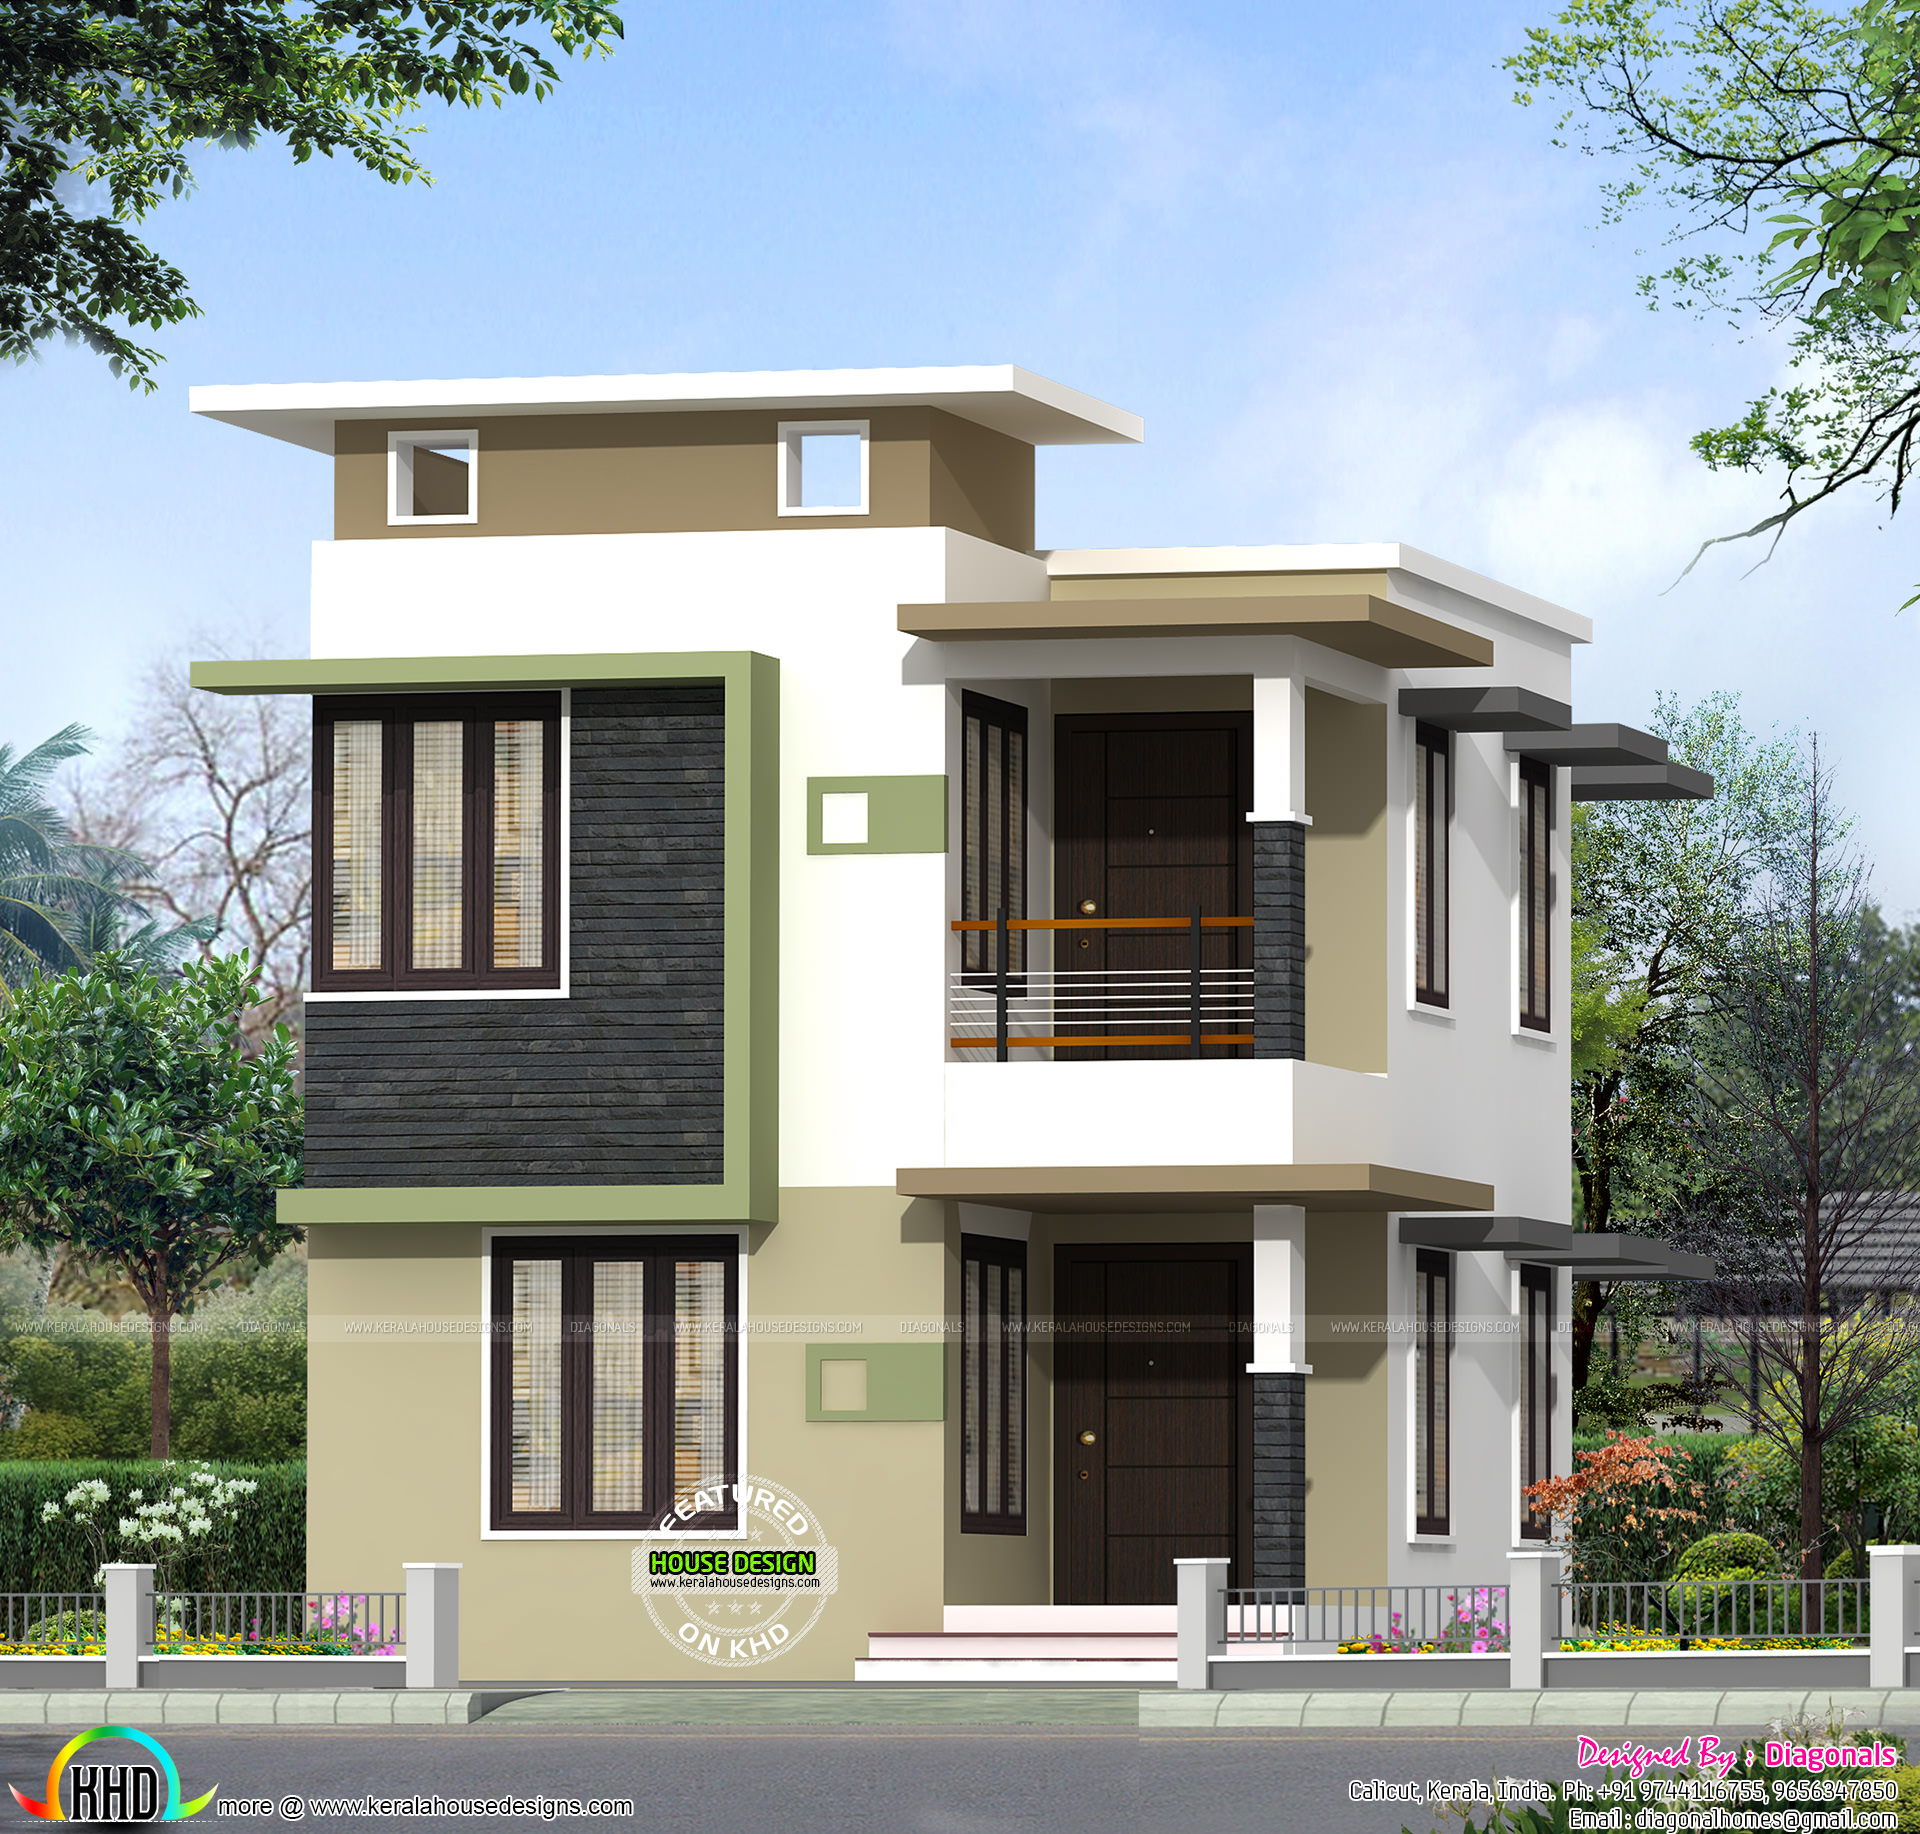 Modern house design 2017 of 33 beautiful 2 storey house photos gallery - Modern Duplex House Design Like Share Comment Click This Link To View More Details Http Apnaghar Co In Search Results Aspx Pinterest Duplex House